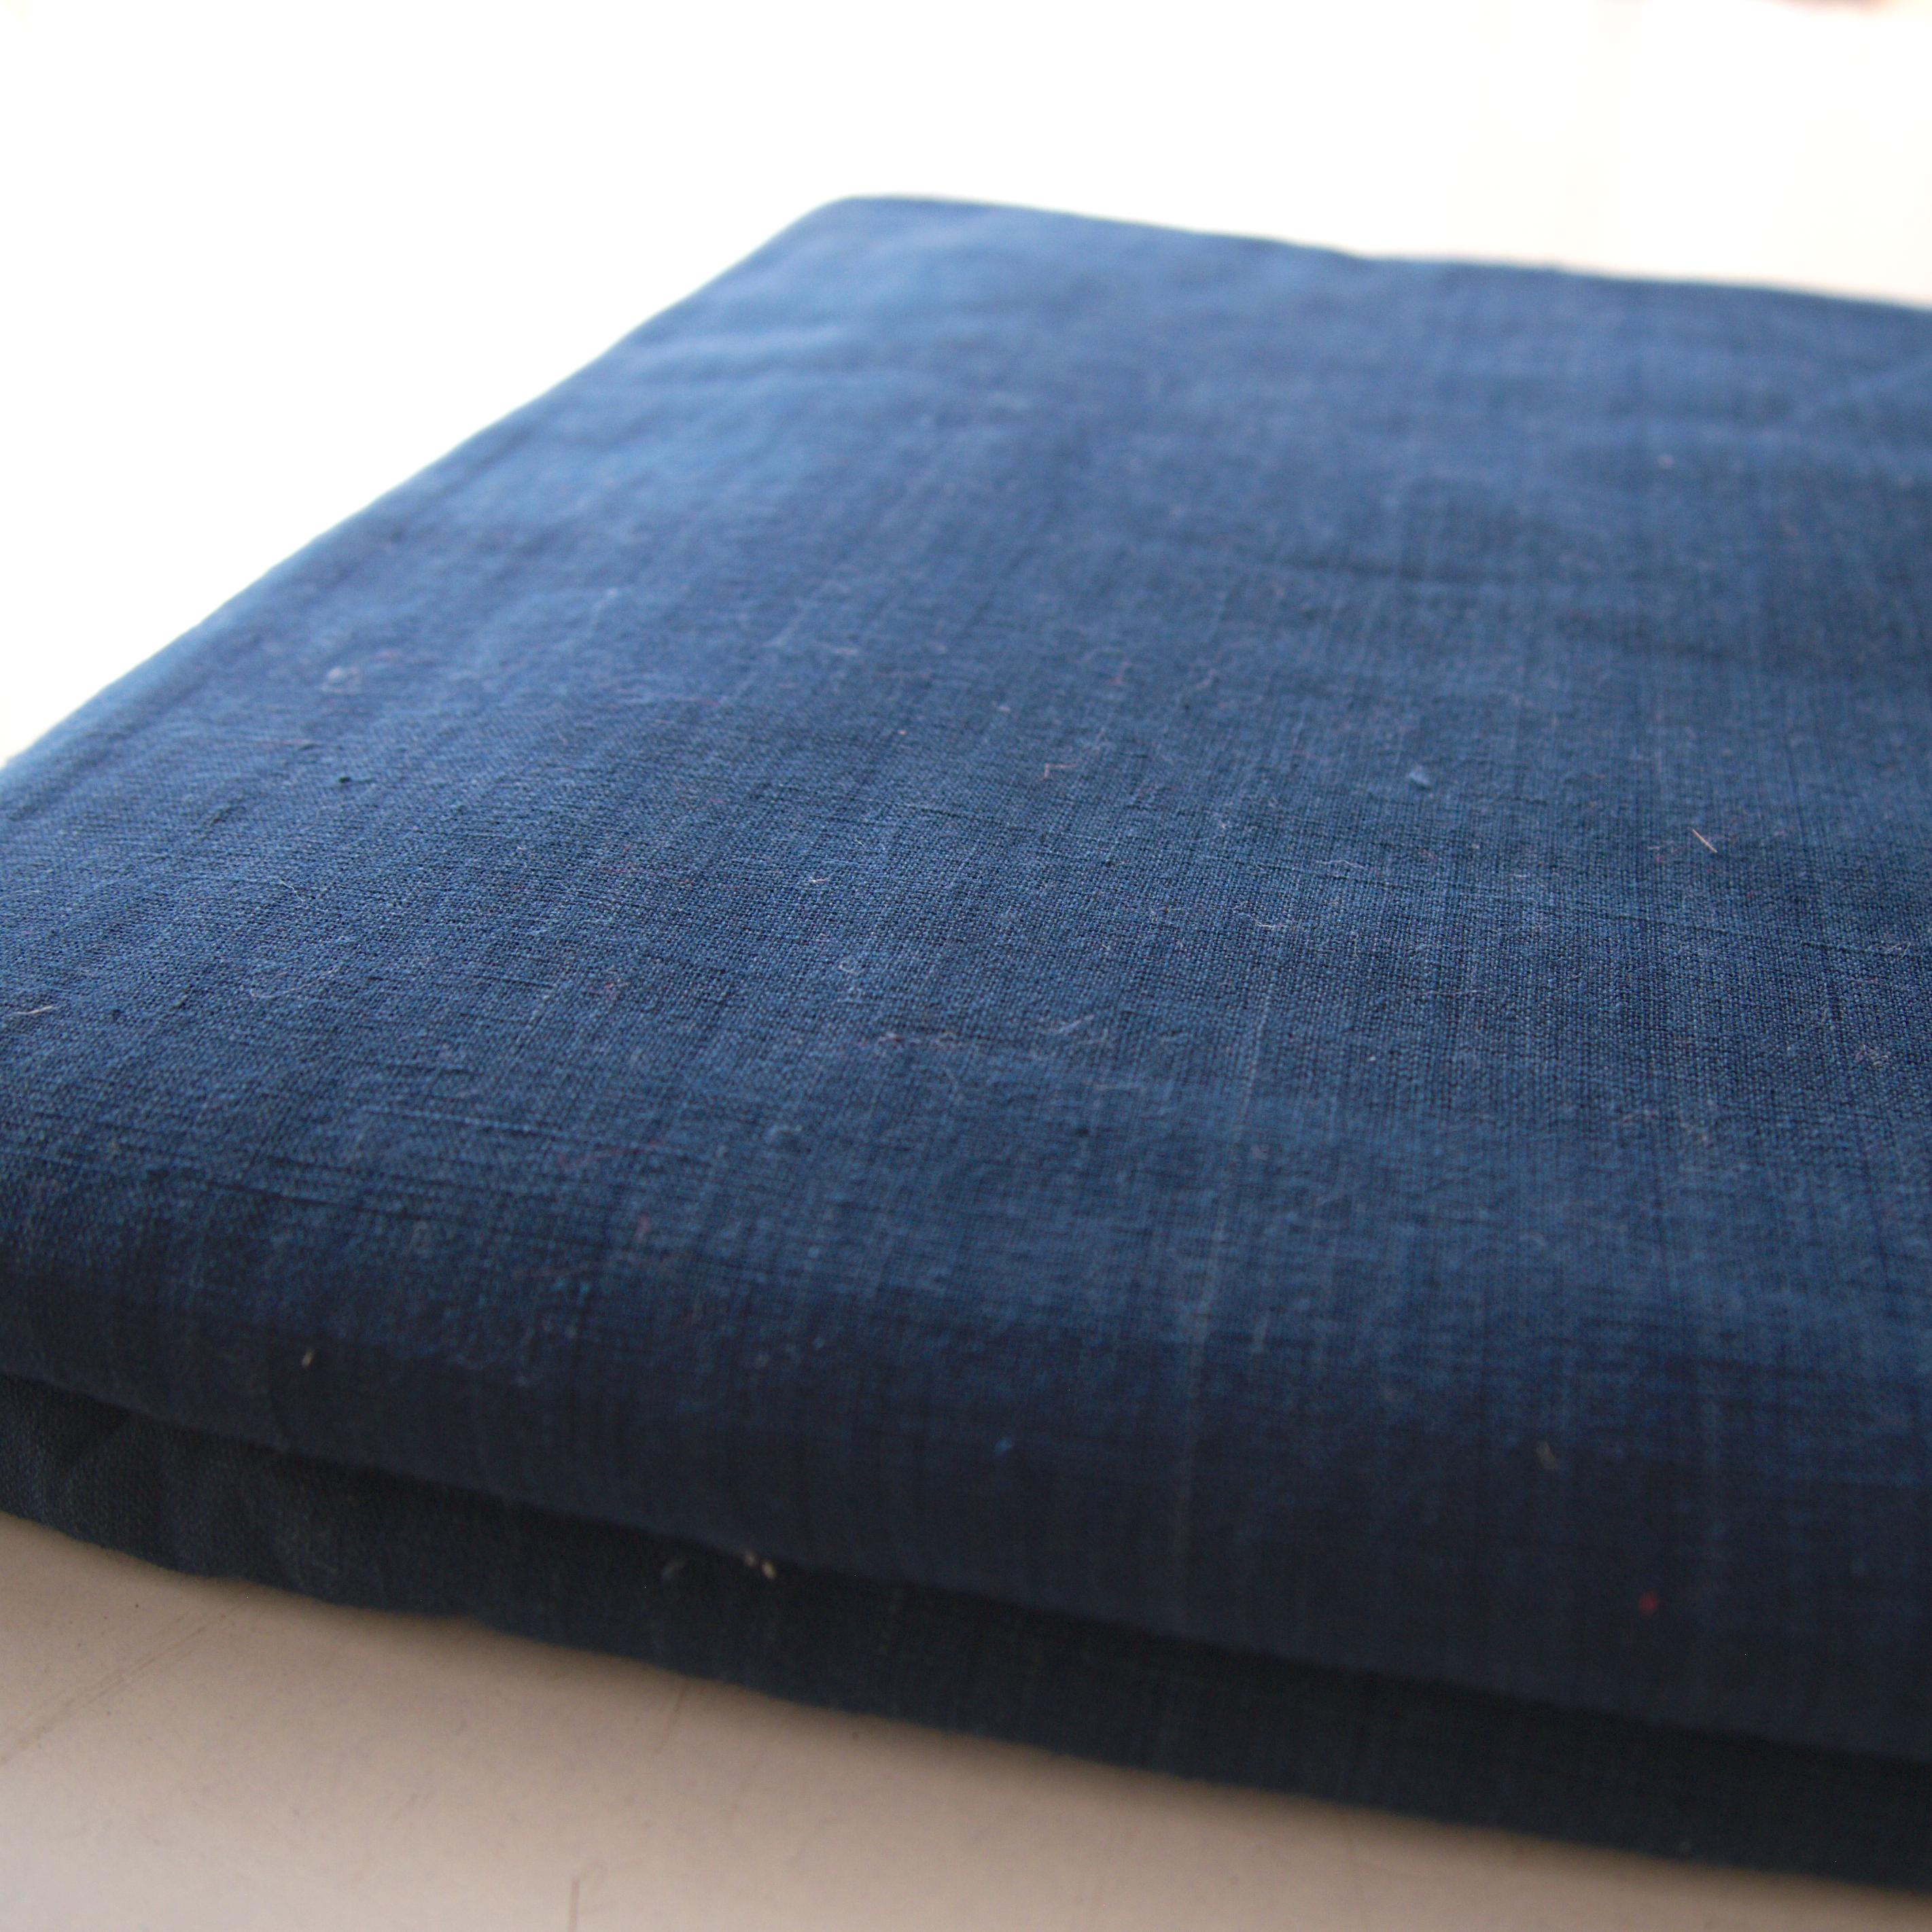 100% Handloom Woven Cotton - Natural Dark Indigo Warp & Warp - Bolt